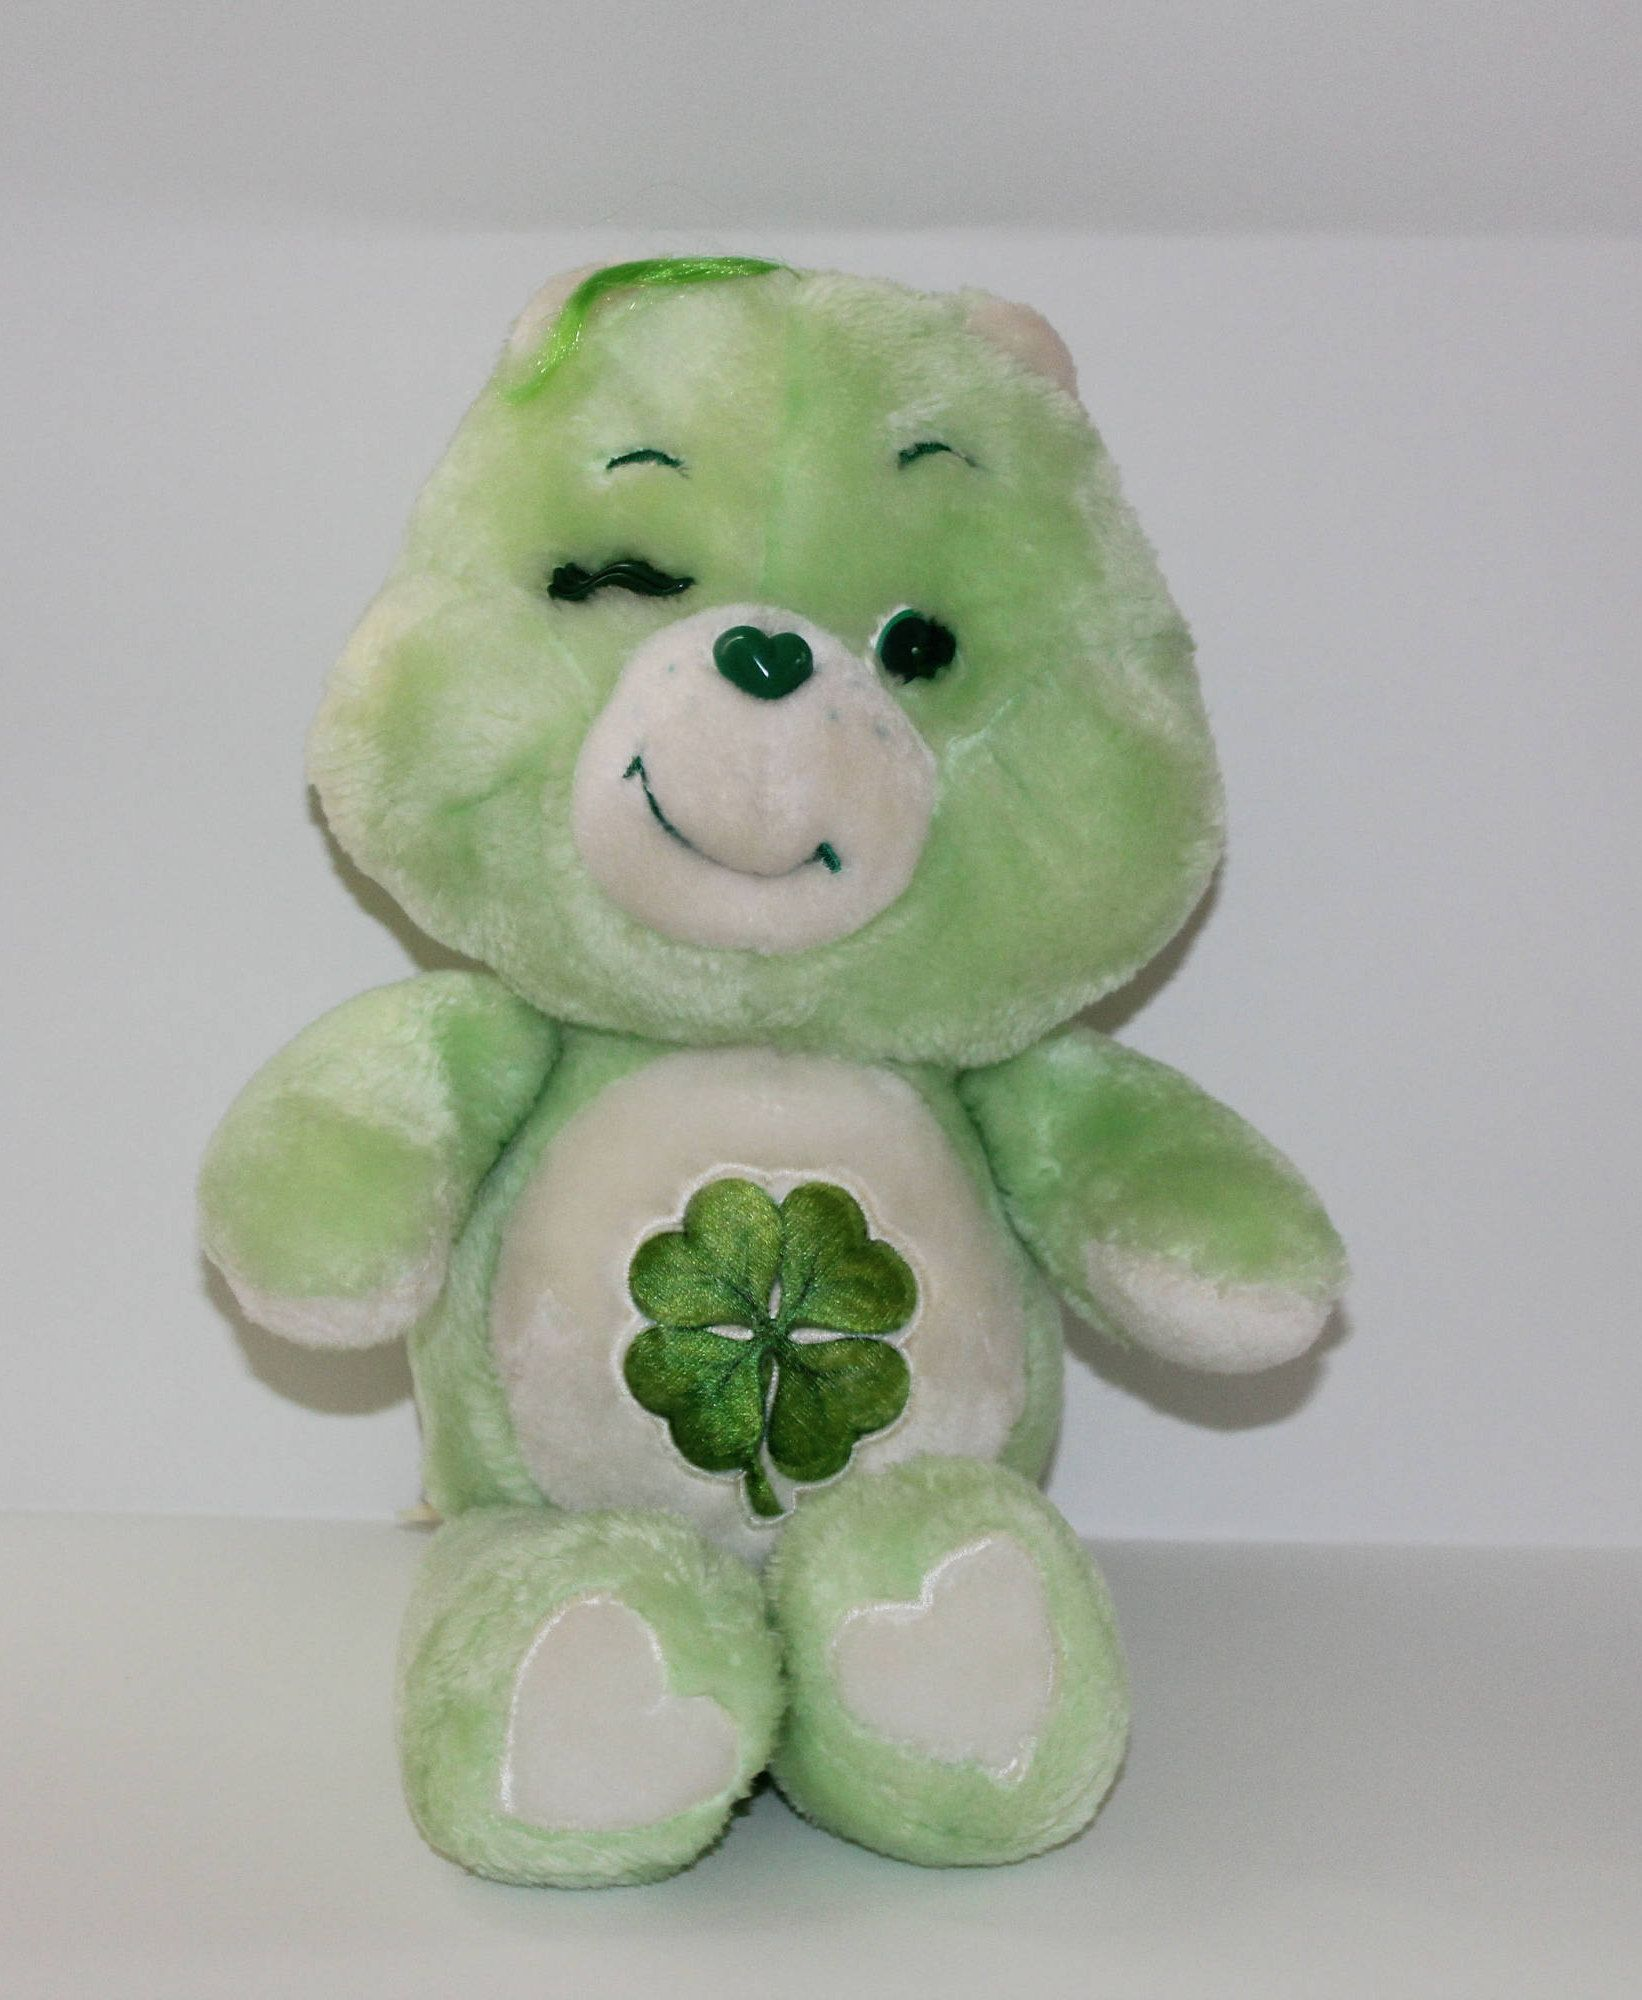 The green Good Luck Care Bear, with shamrock